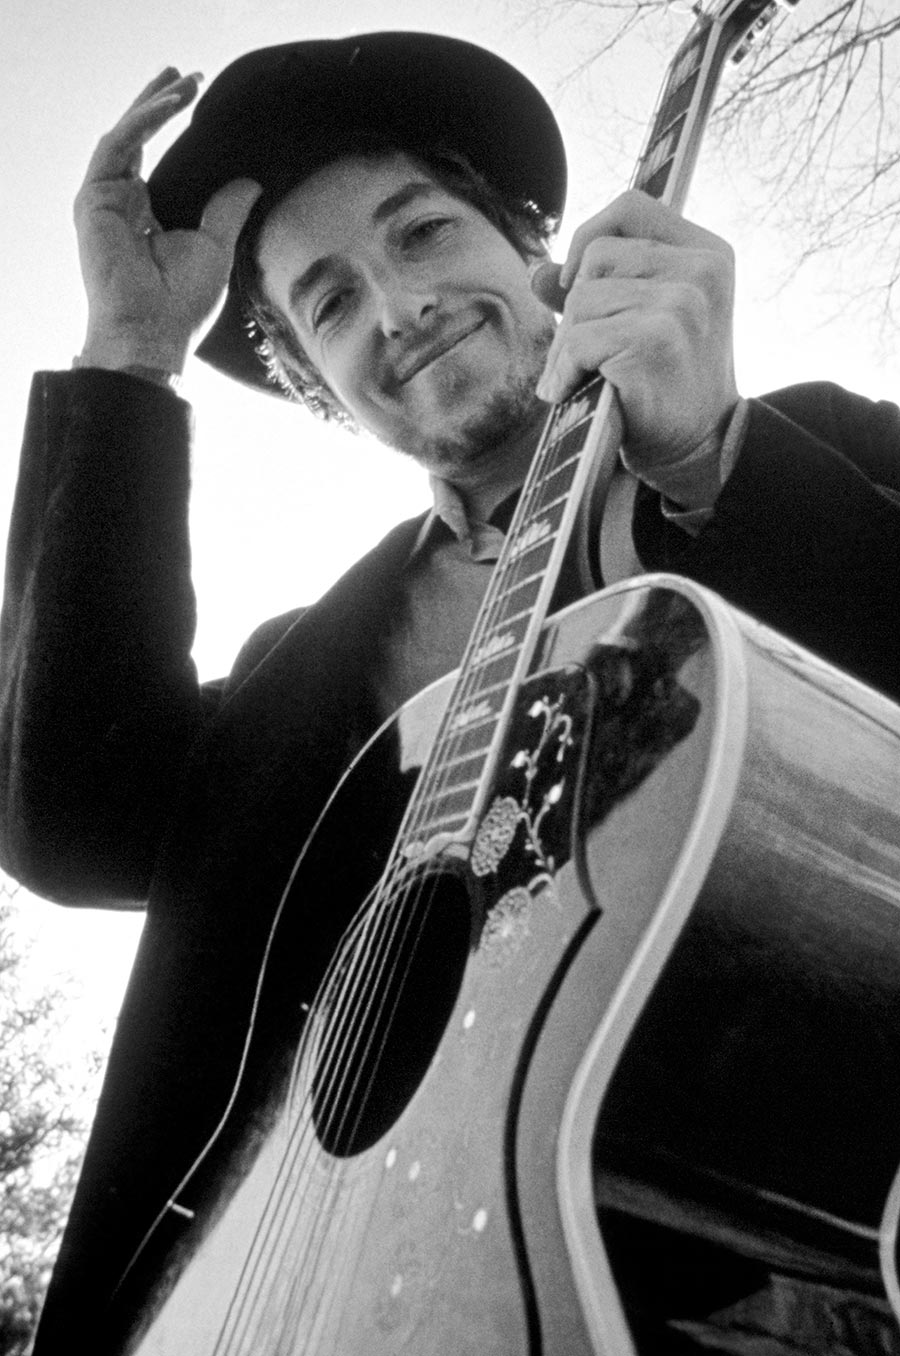 Bob Dylan at his home. Byrdcliffe, New York. 1968.